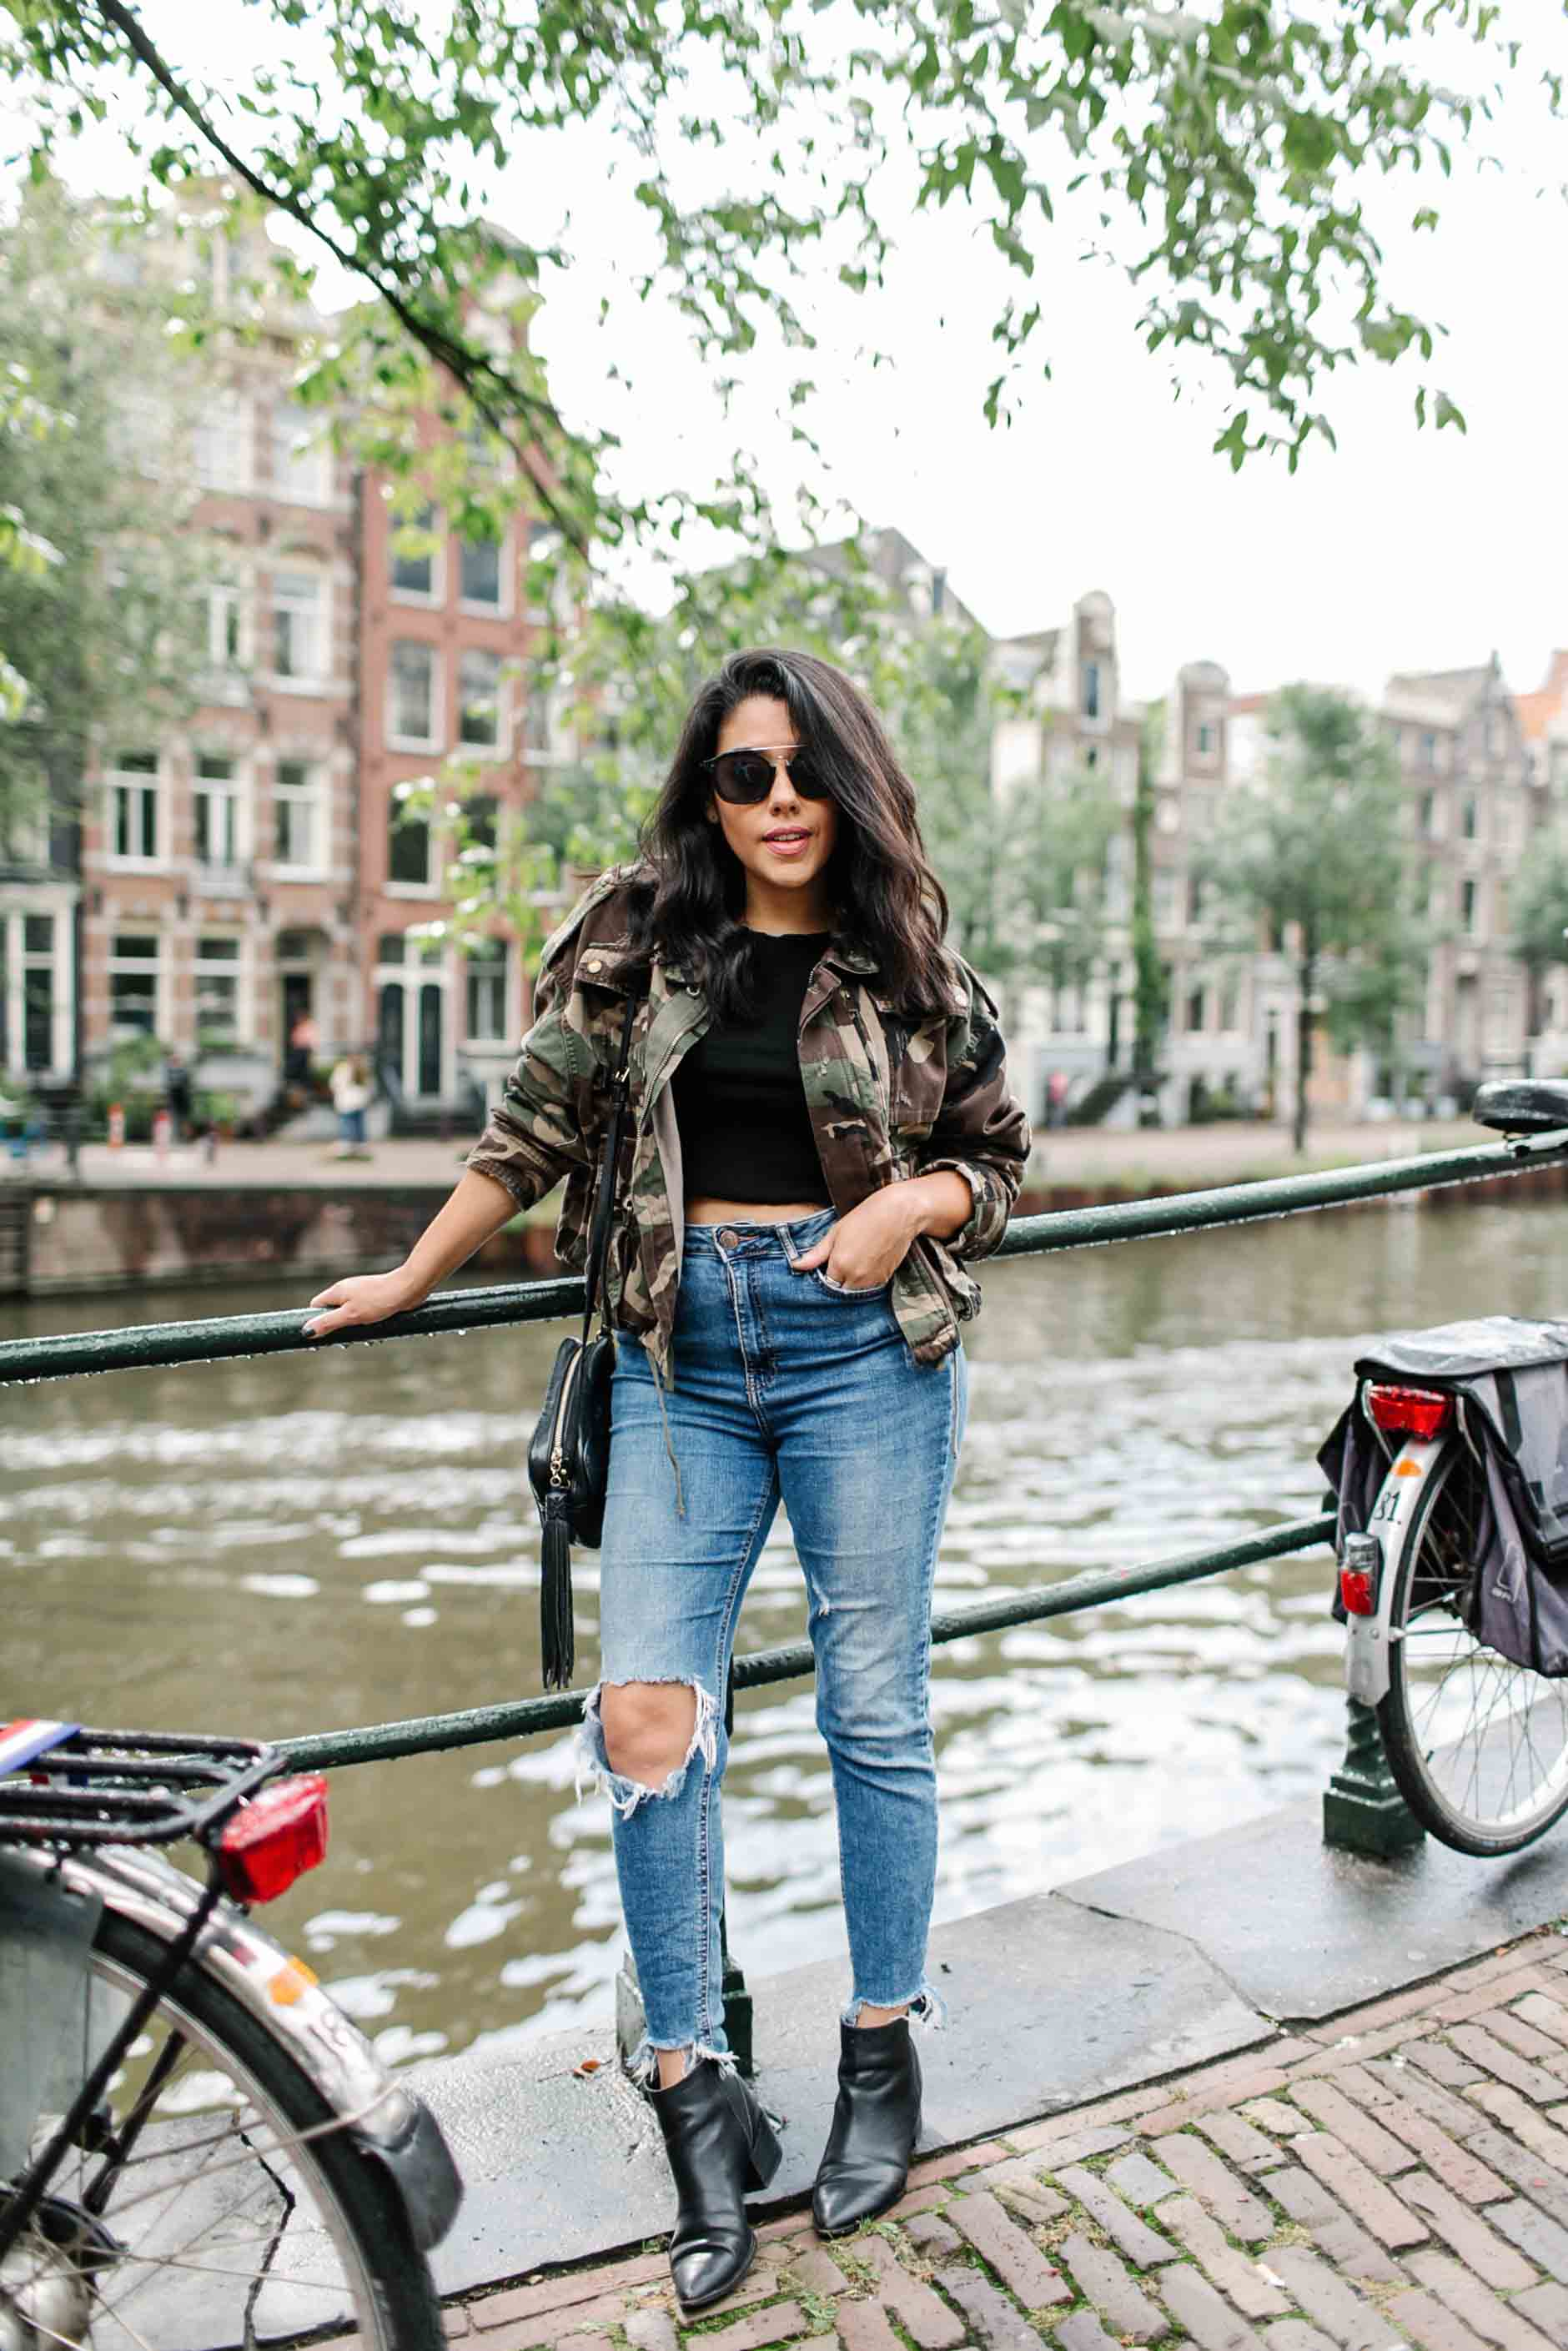 naty michele in amsterdam